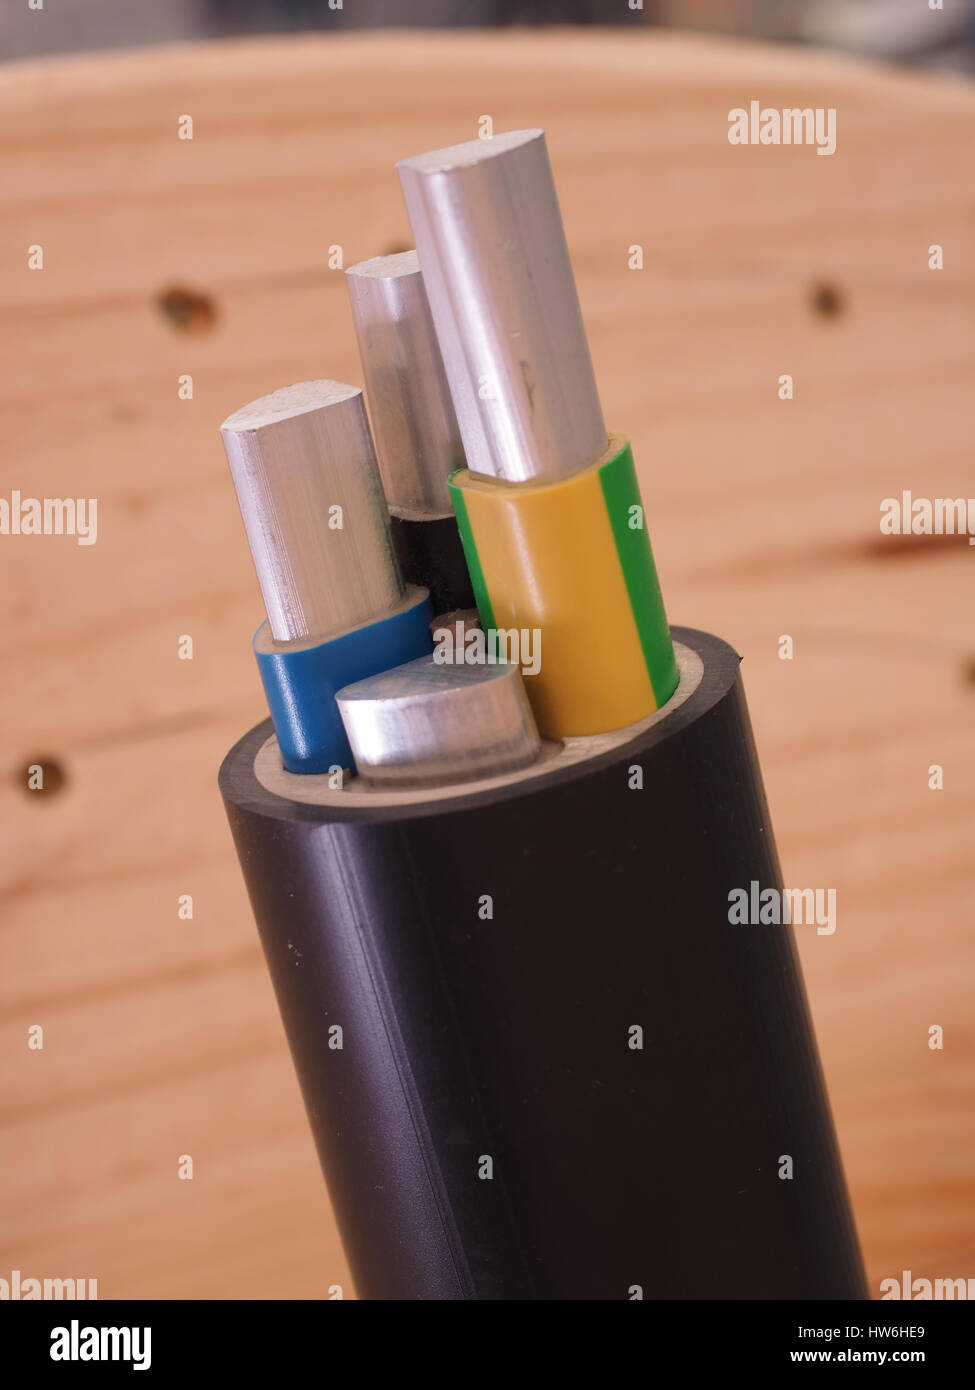 Medium Voltage Sector Cable - Stock Image